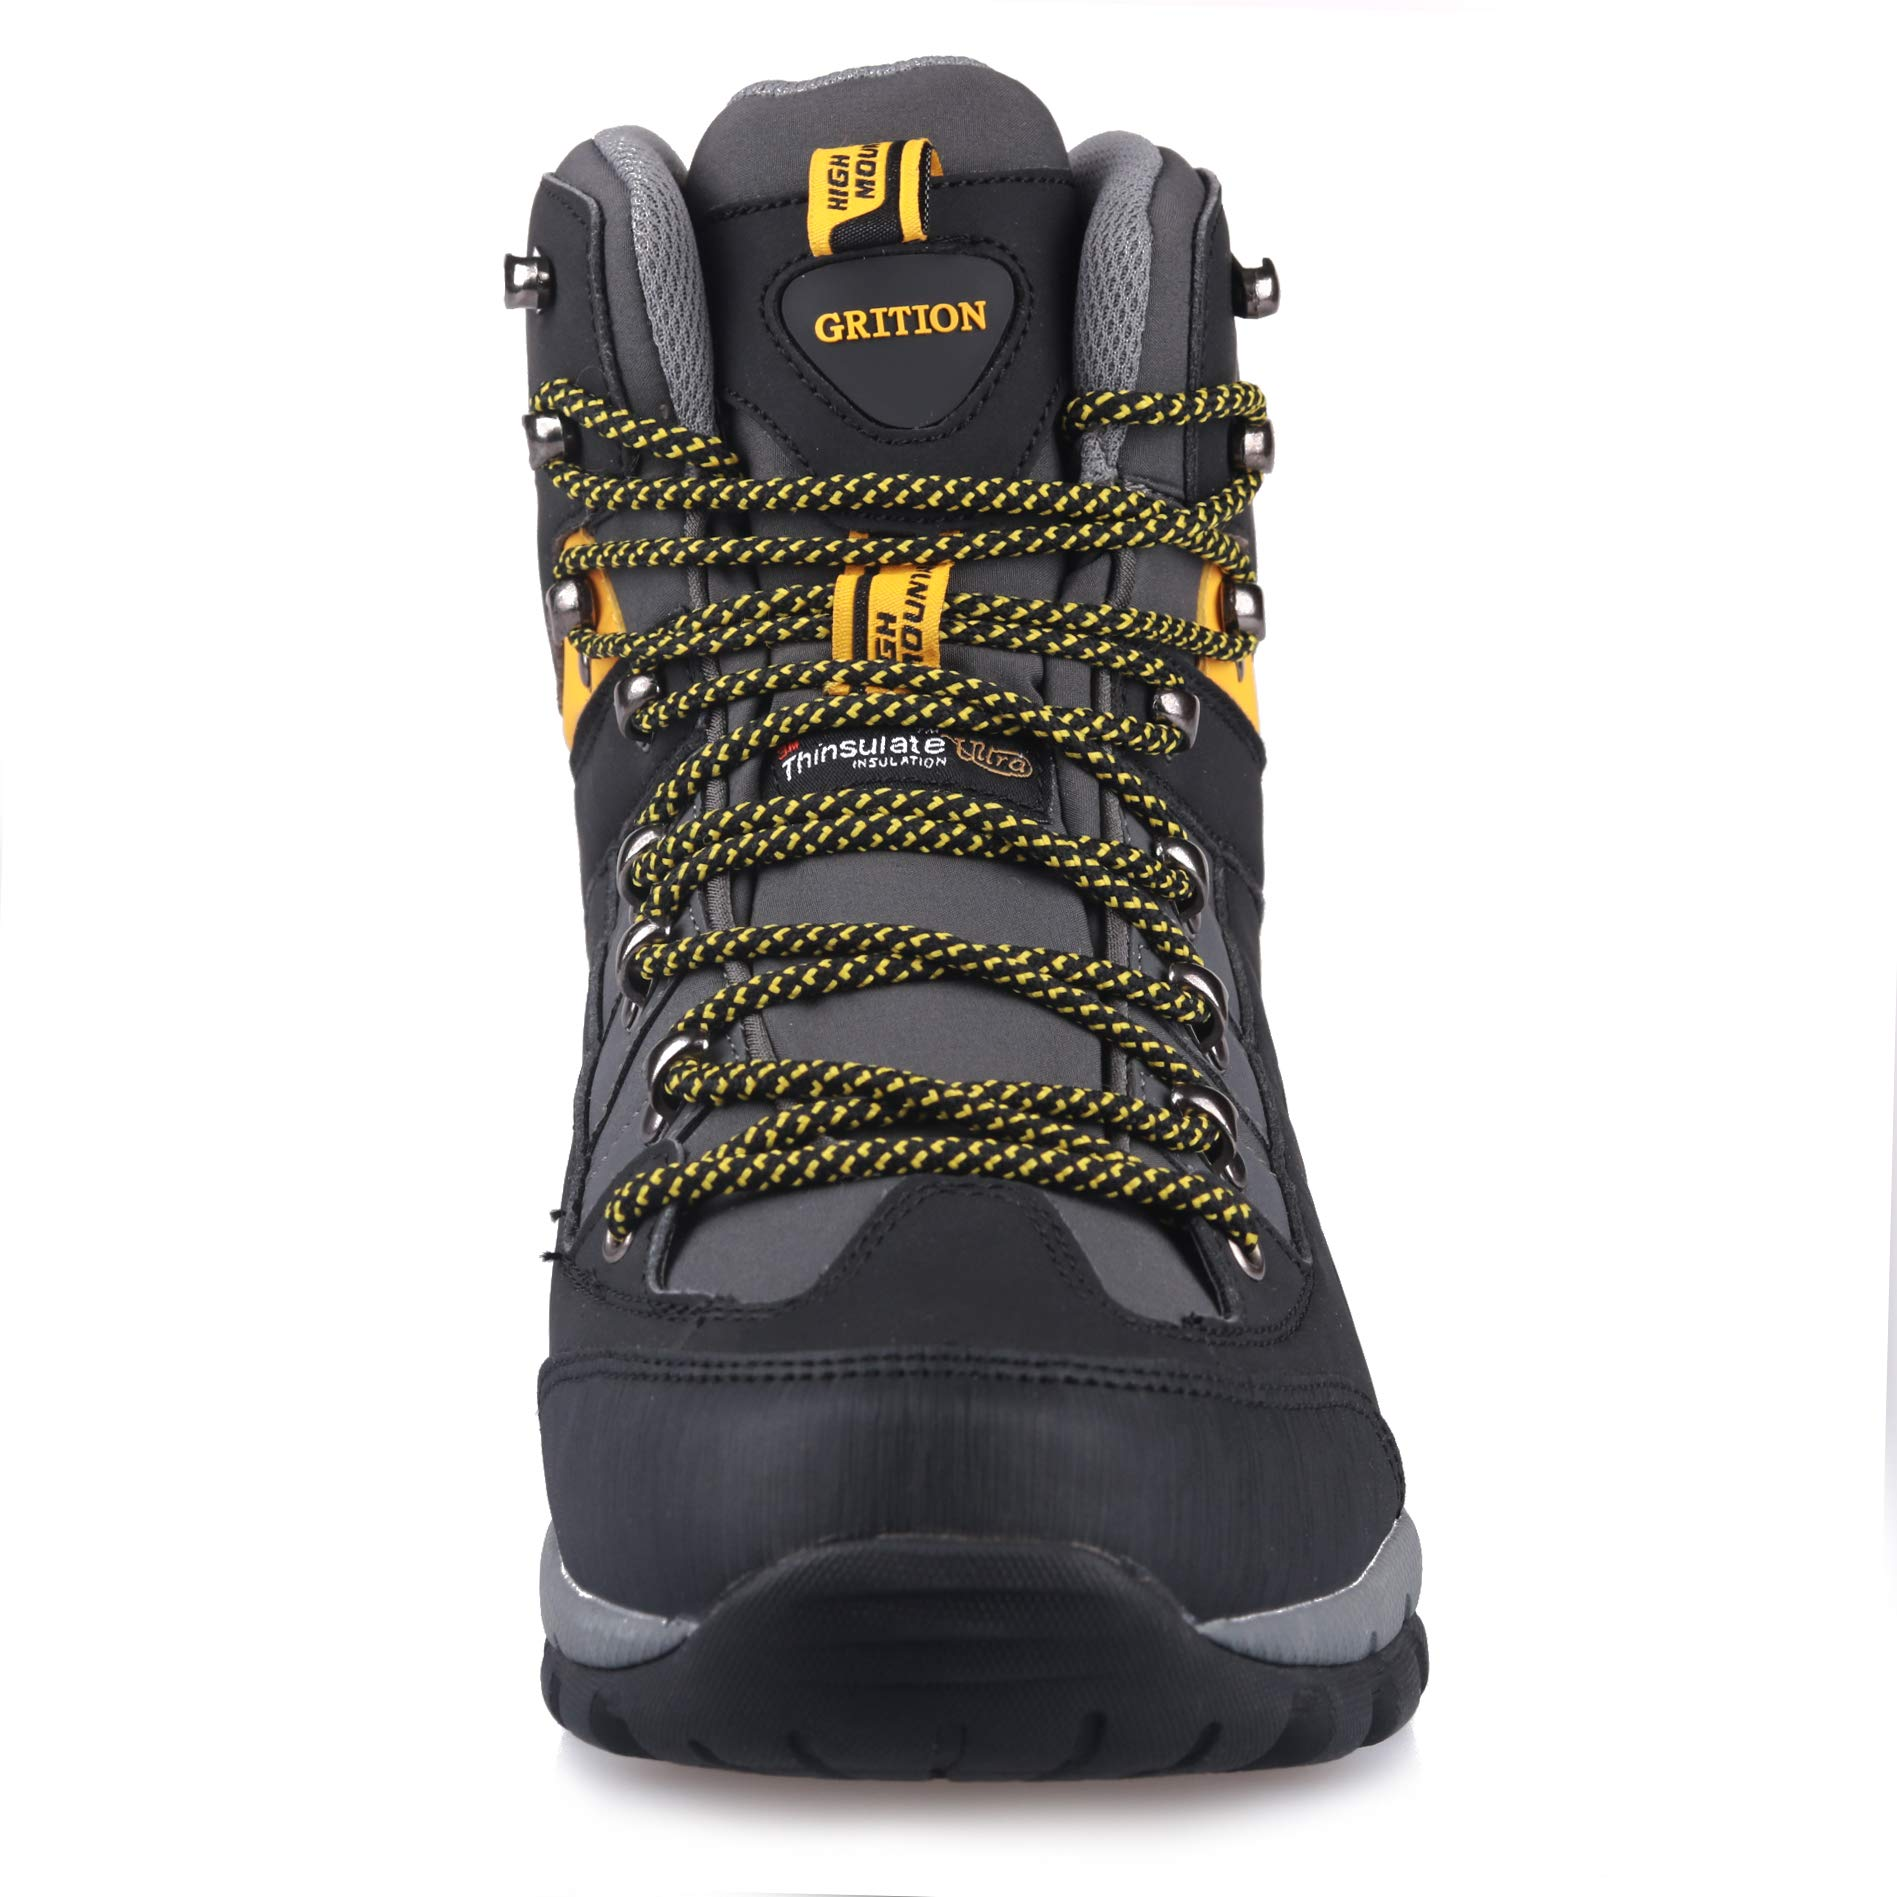 GRITION Men Hiking Boots Waterproof High Top Walking Non Slip Soft Shell Trekking Shoes Black/Yellow by GRITION (Image #3)